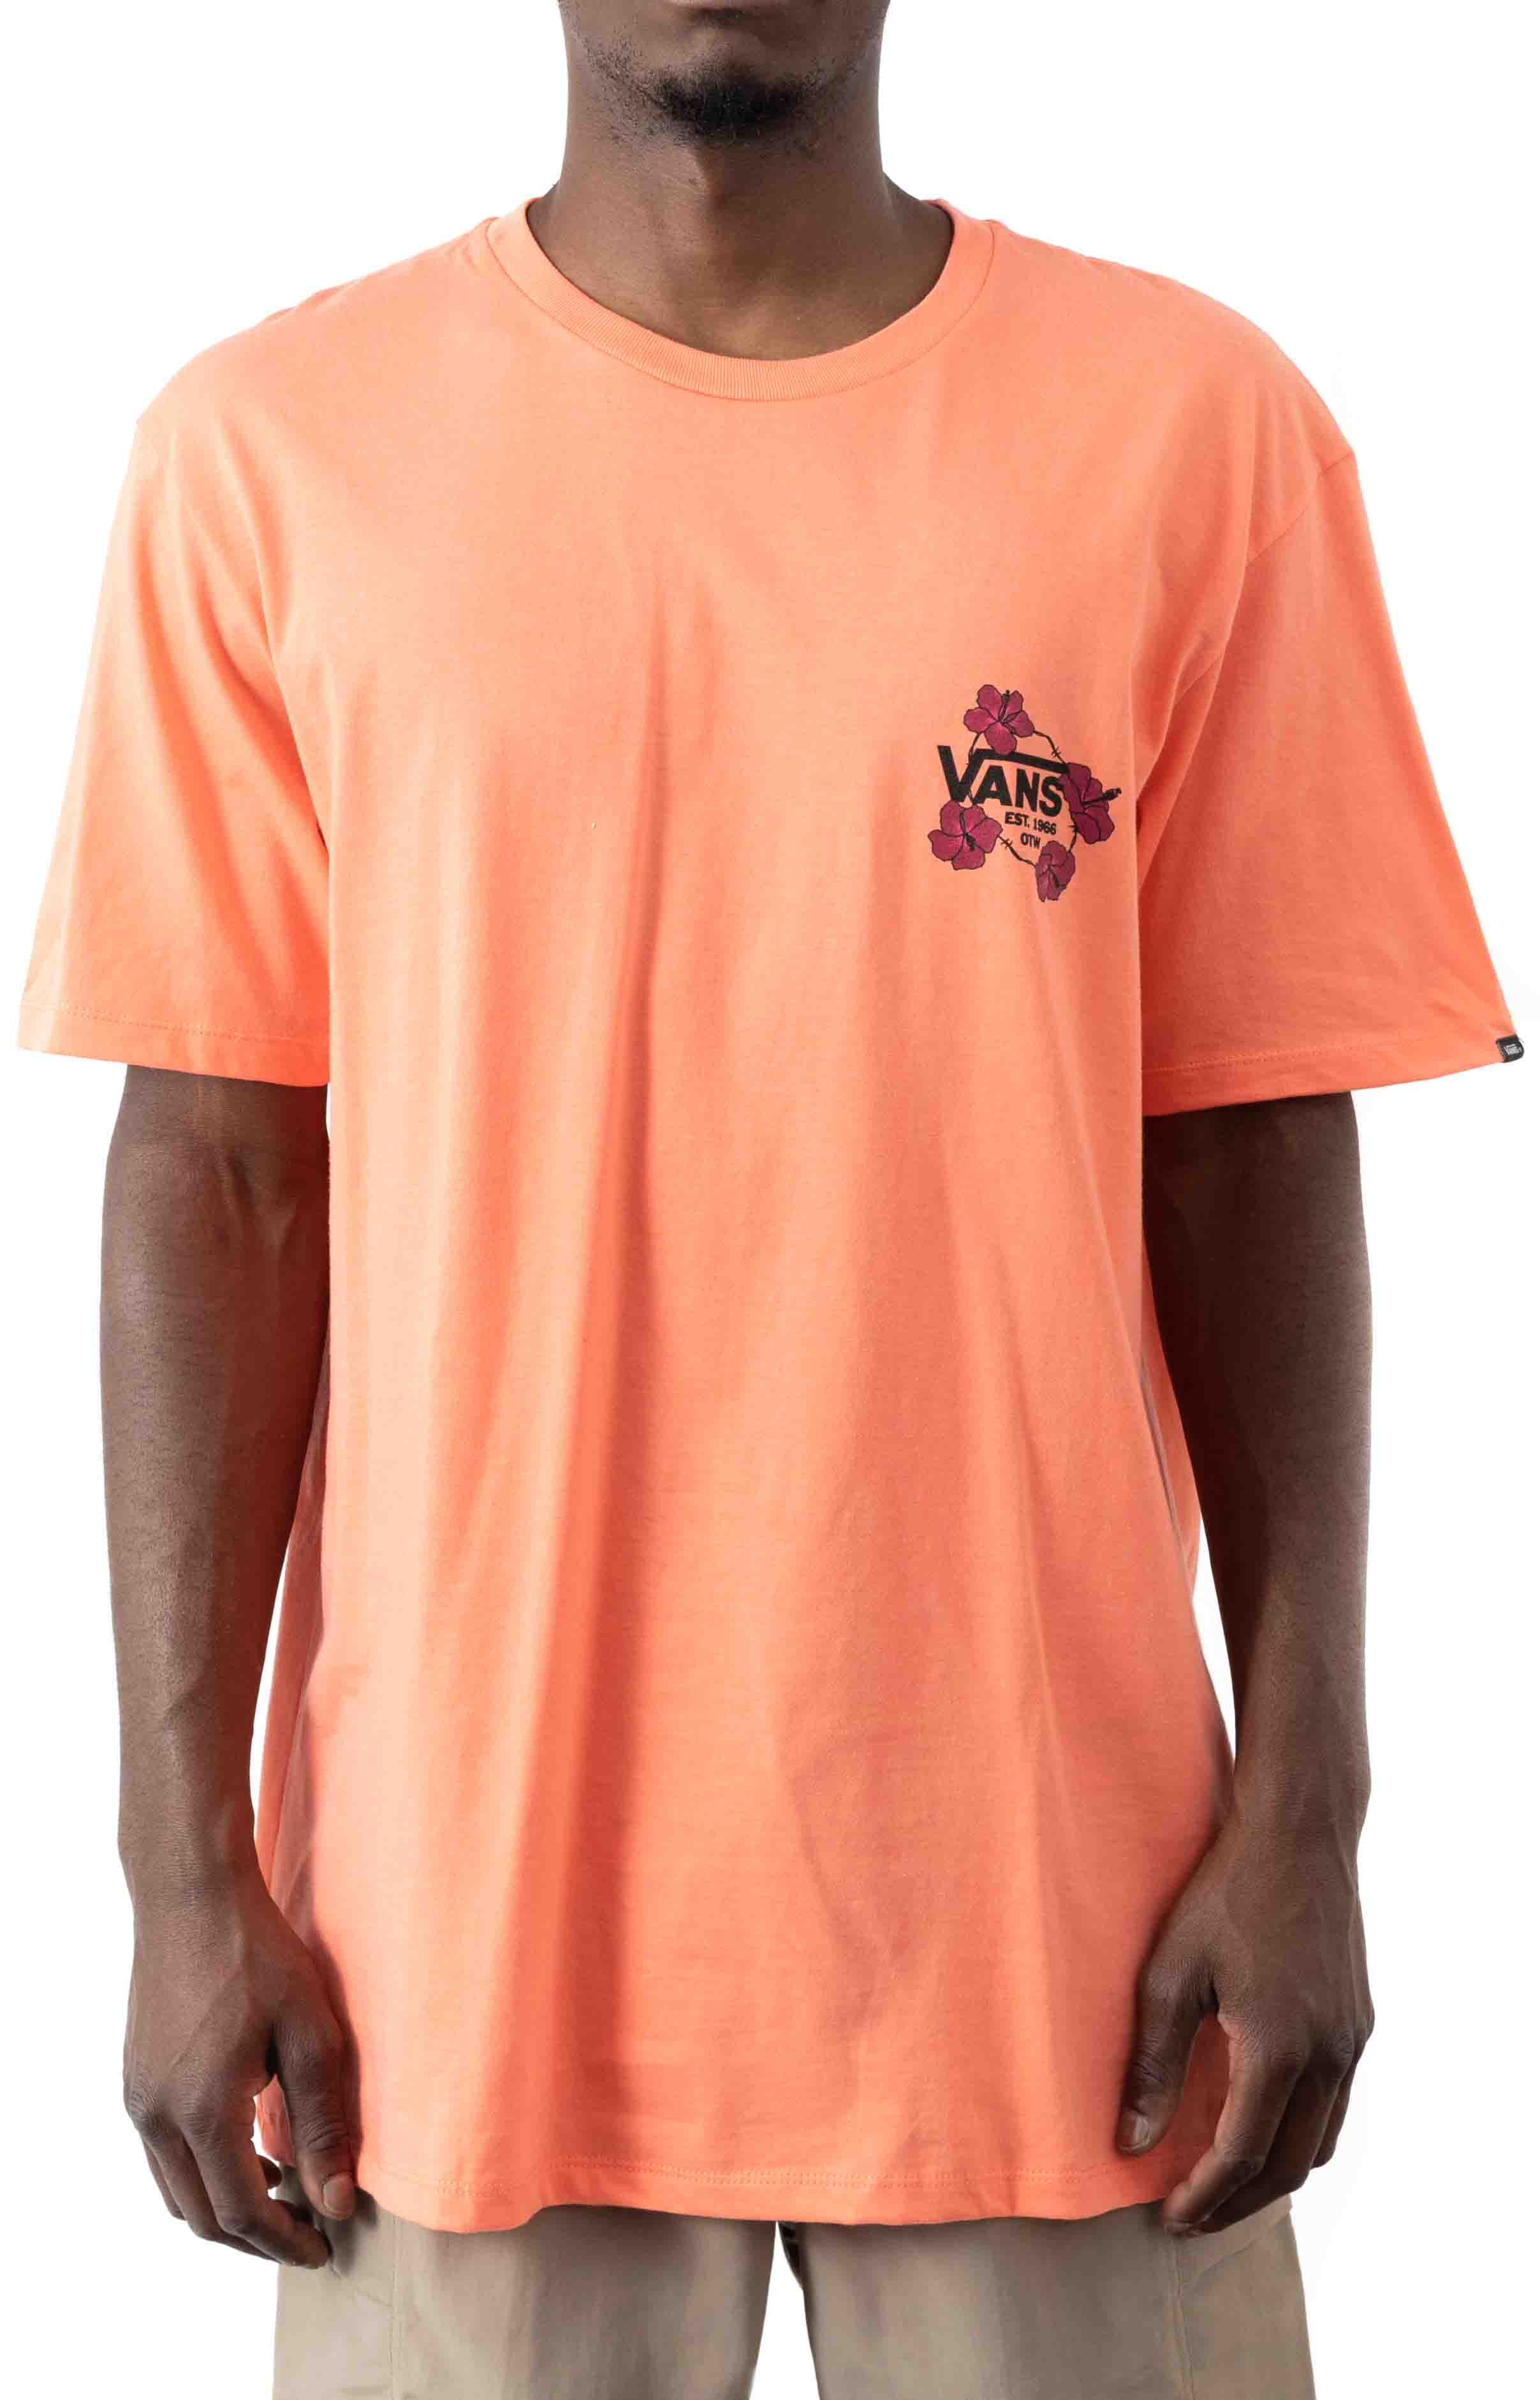 Lei'd To Rest T-Shirt - Fusion Coral